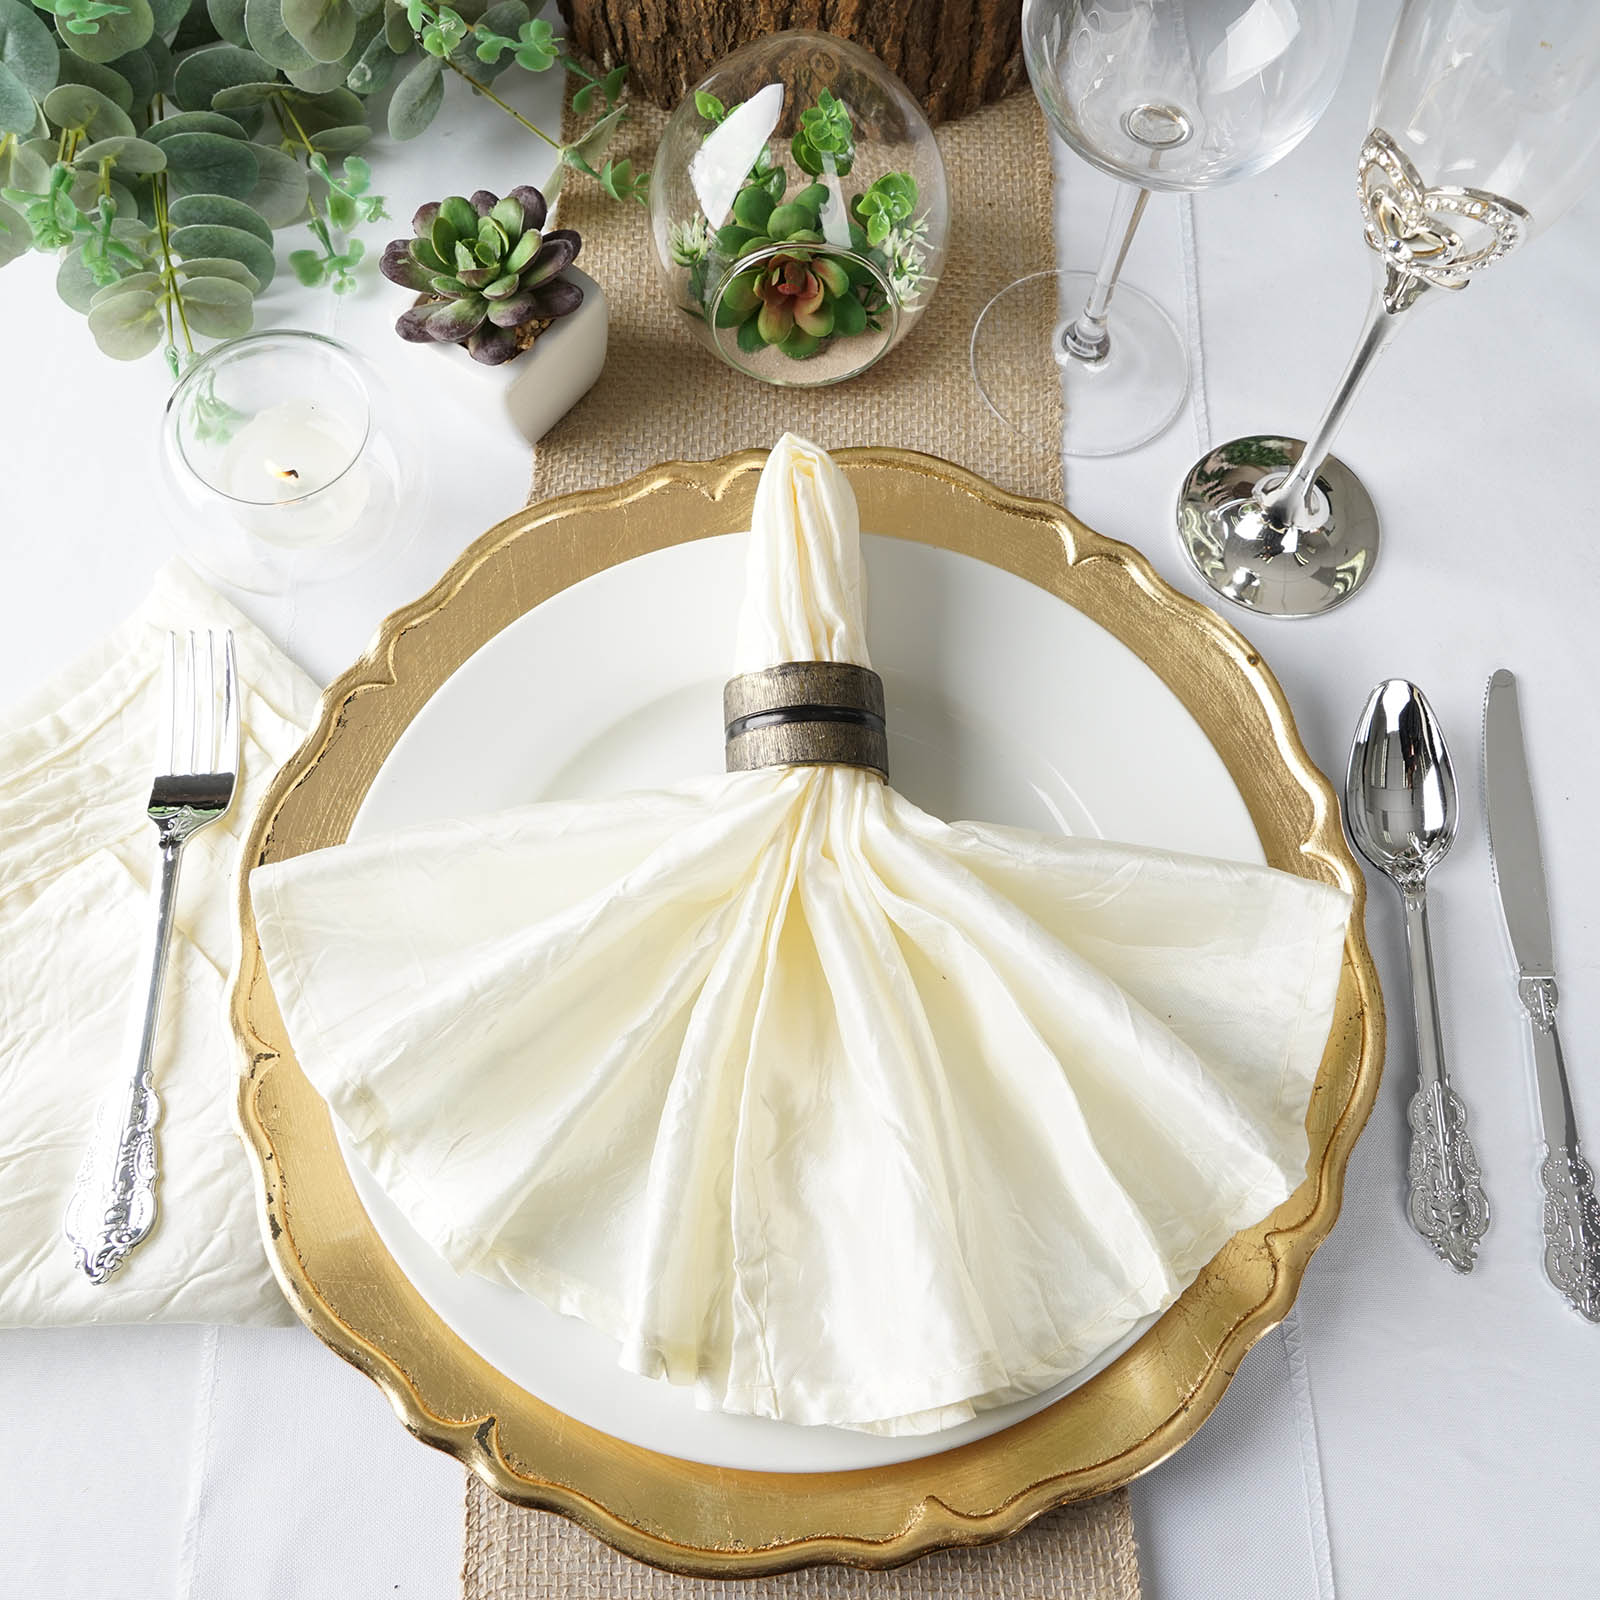 BalsaCircle 5 pcs 20 inch Taffeta Crinkle Napkins - Wedding Party Events Restaurant Dinner Kitchen Home Decorations